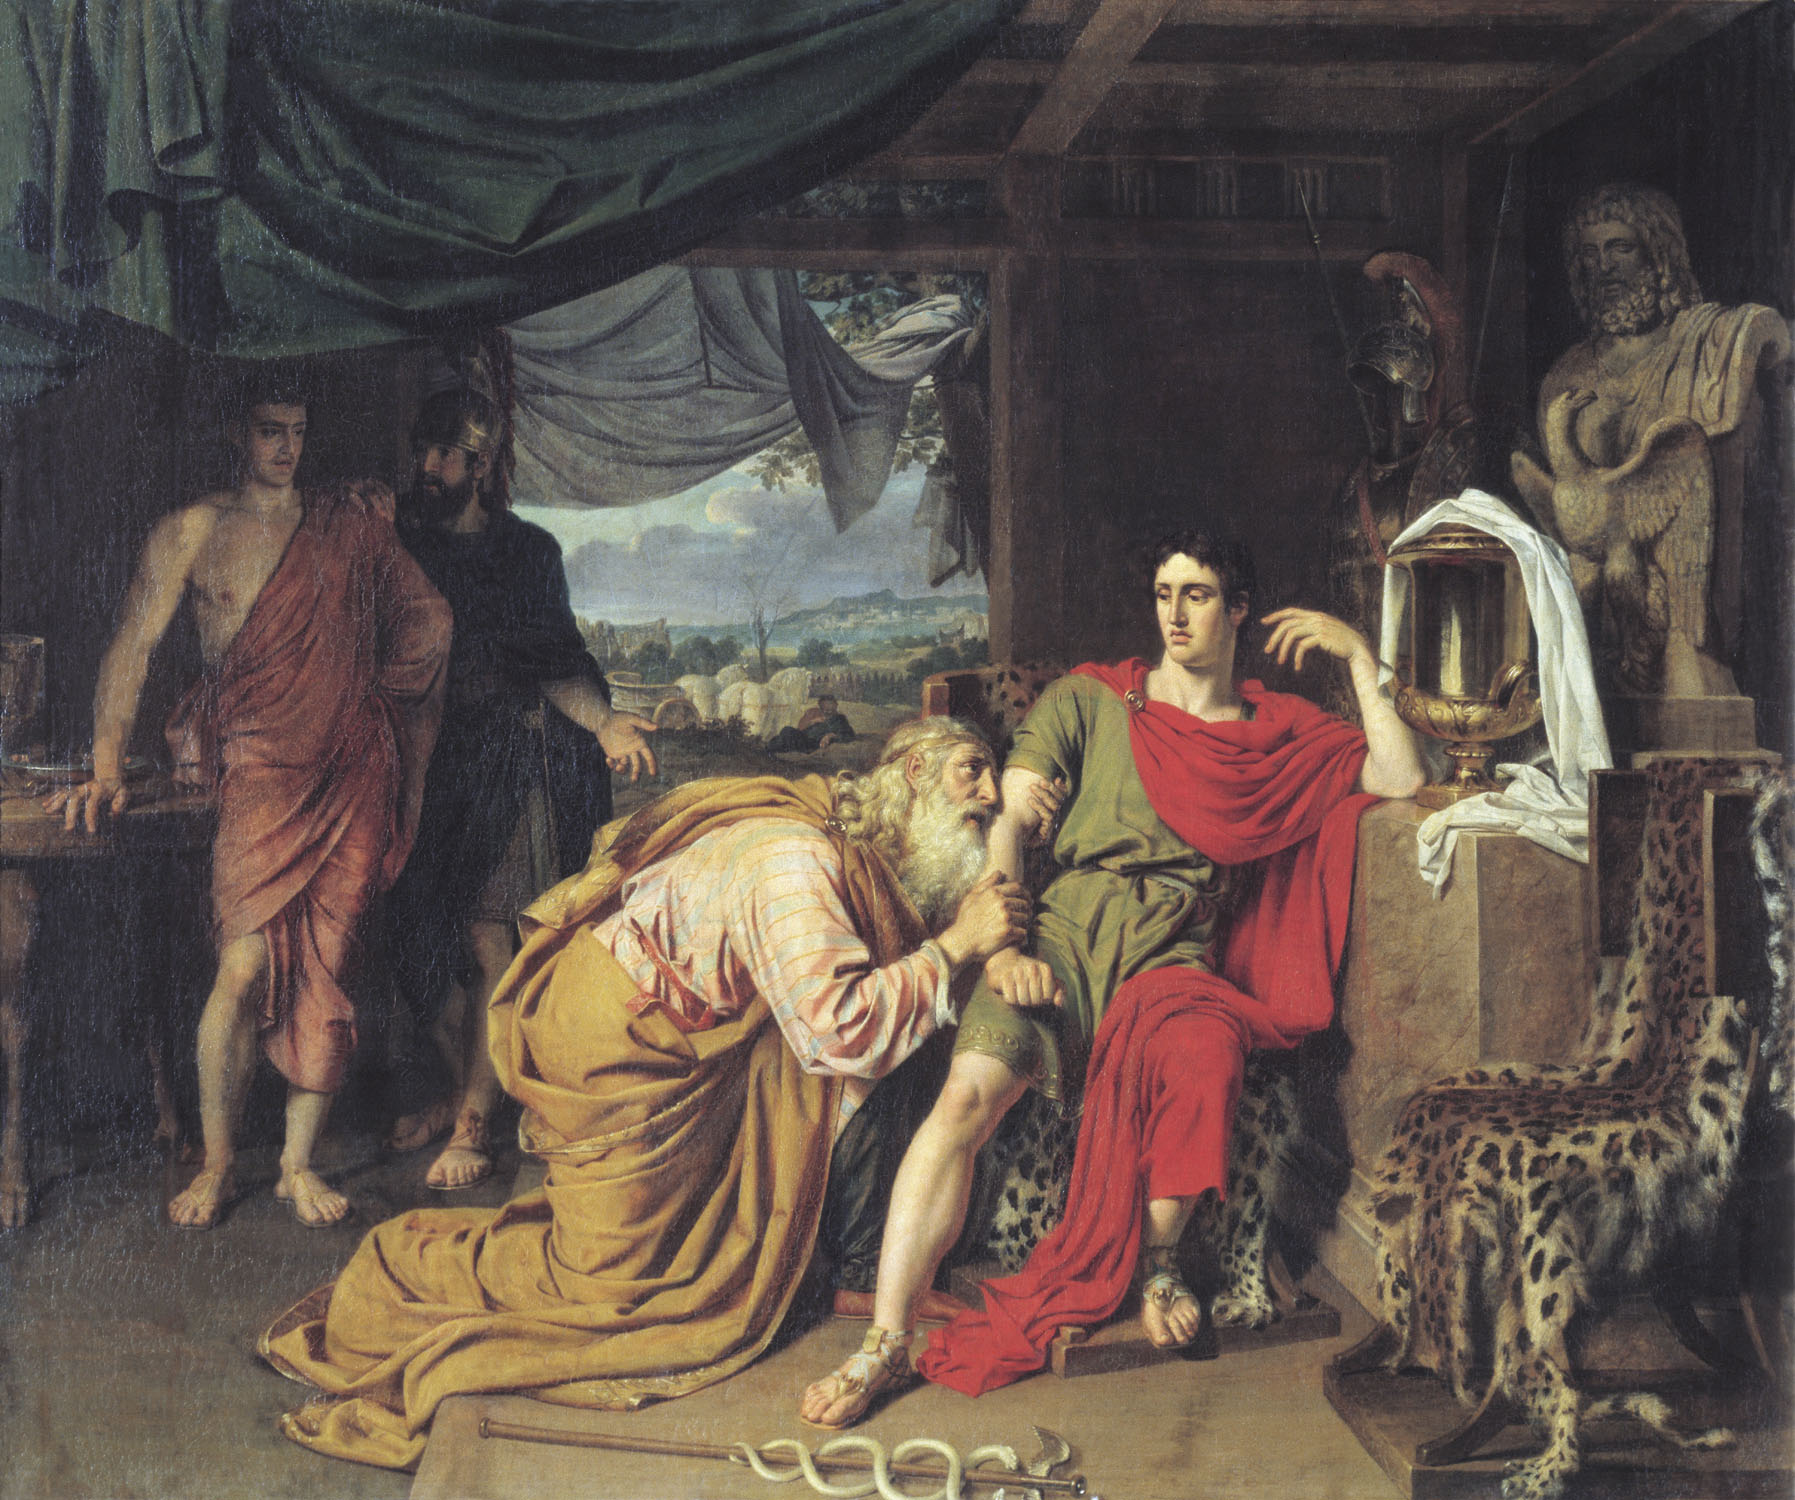 Priam asking Achilles for Hector's body, 1824